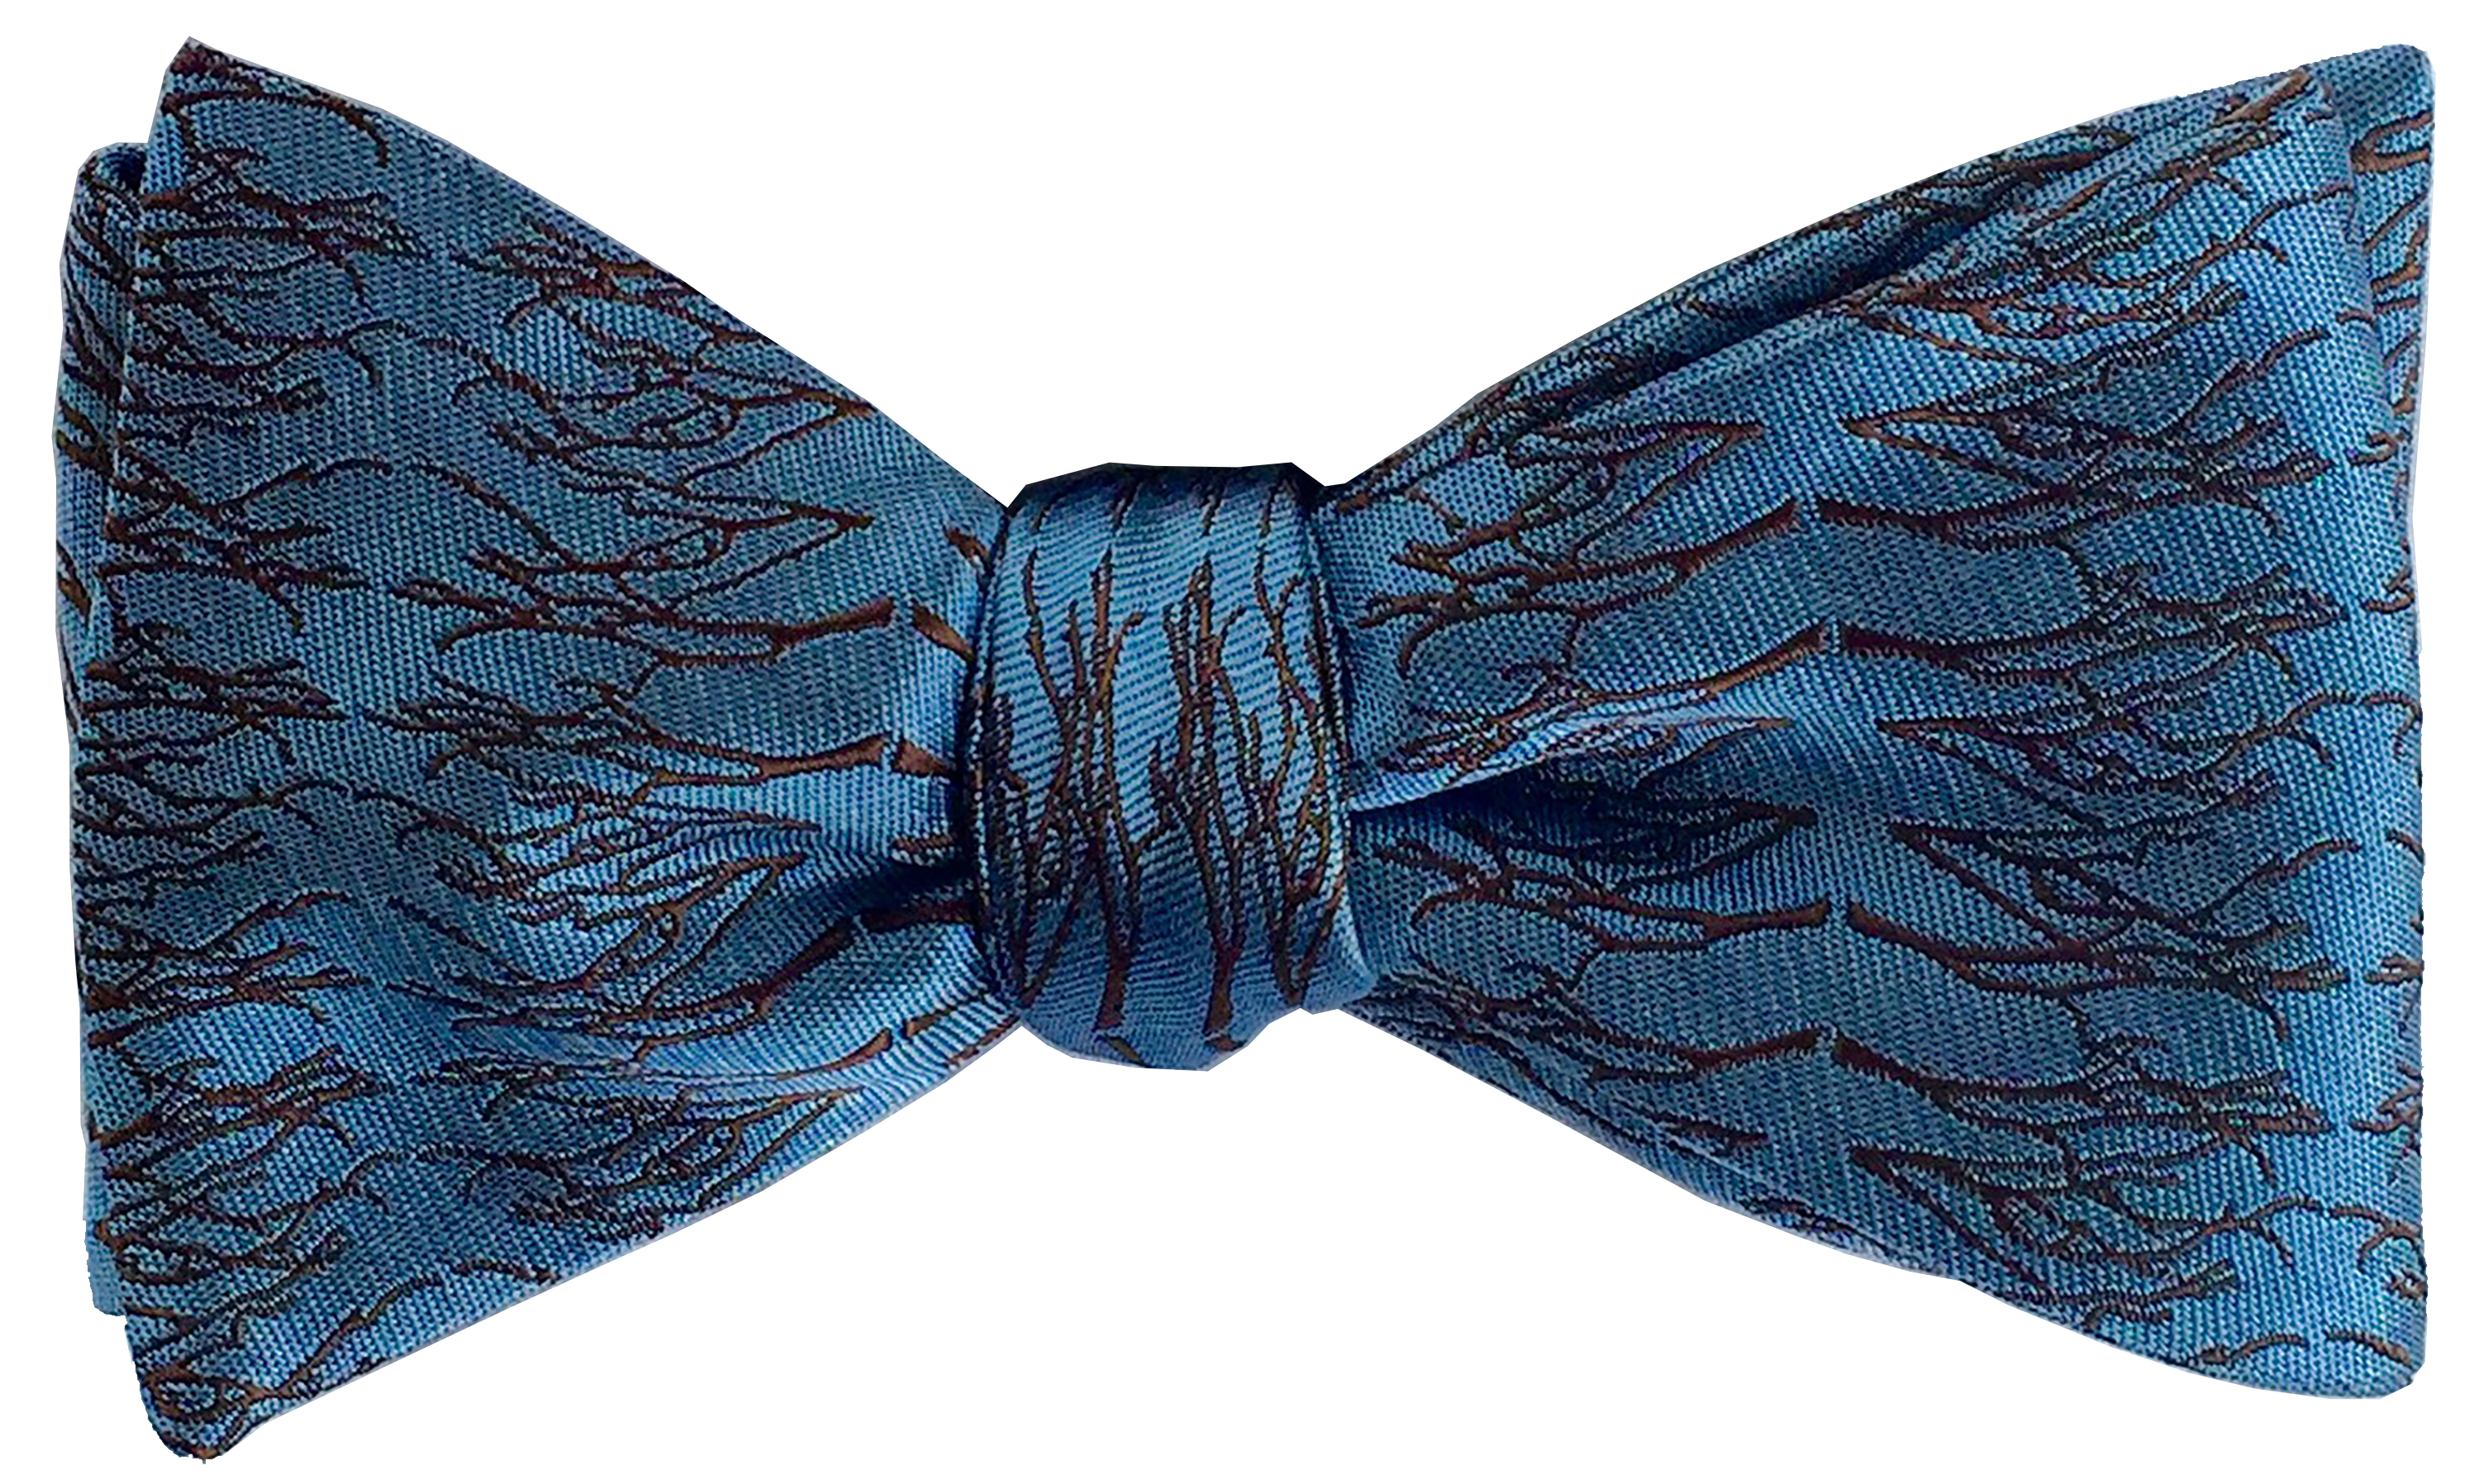 Winter Twig bow tie in Parisian blue and espresso